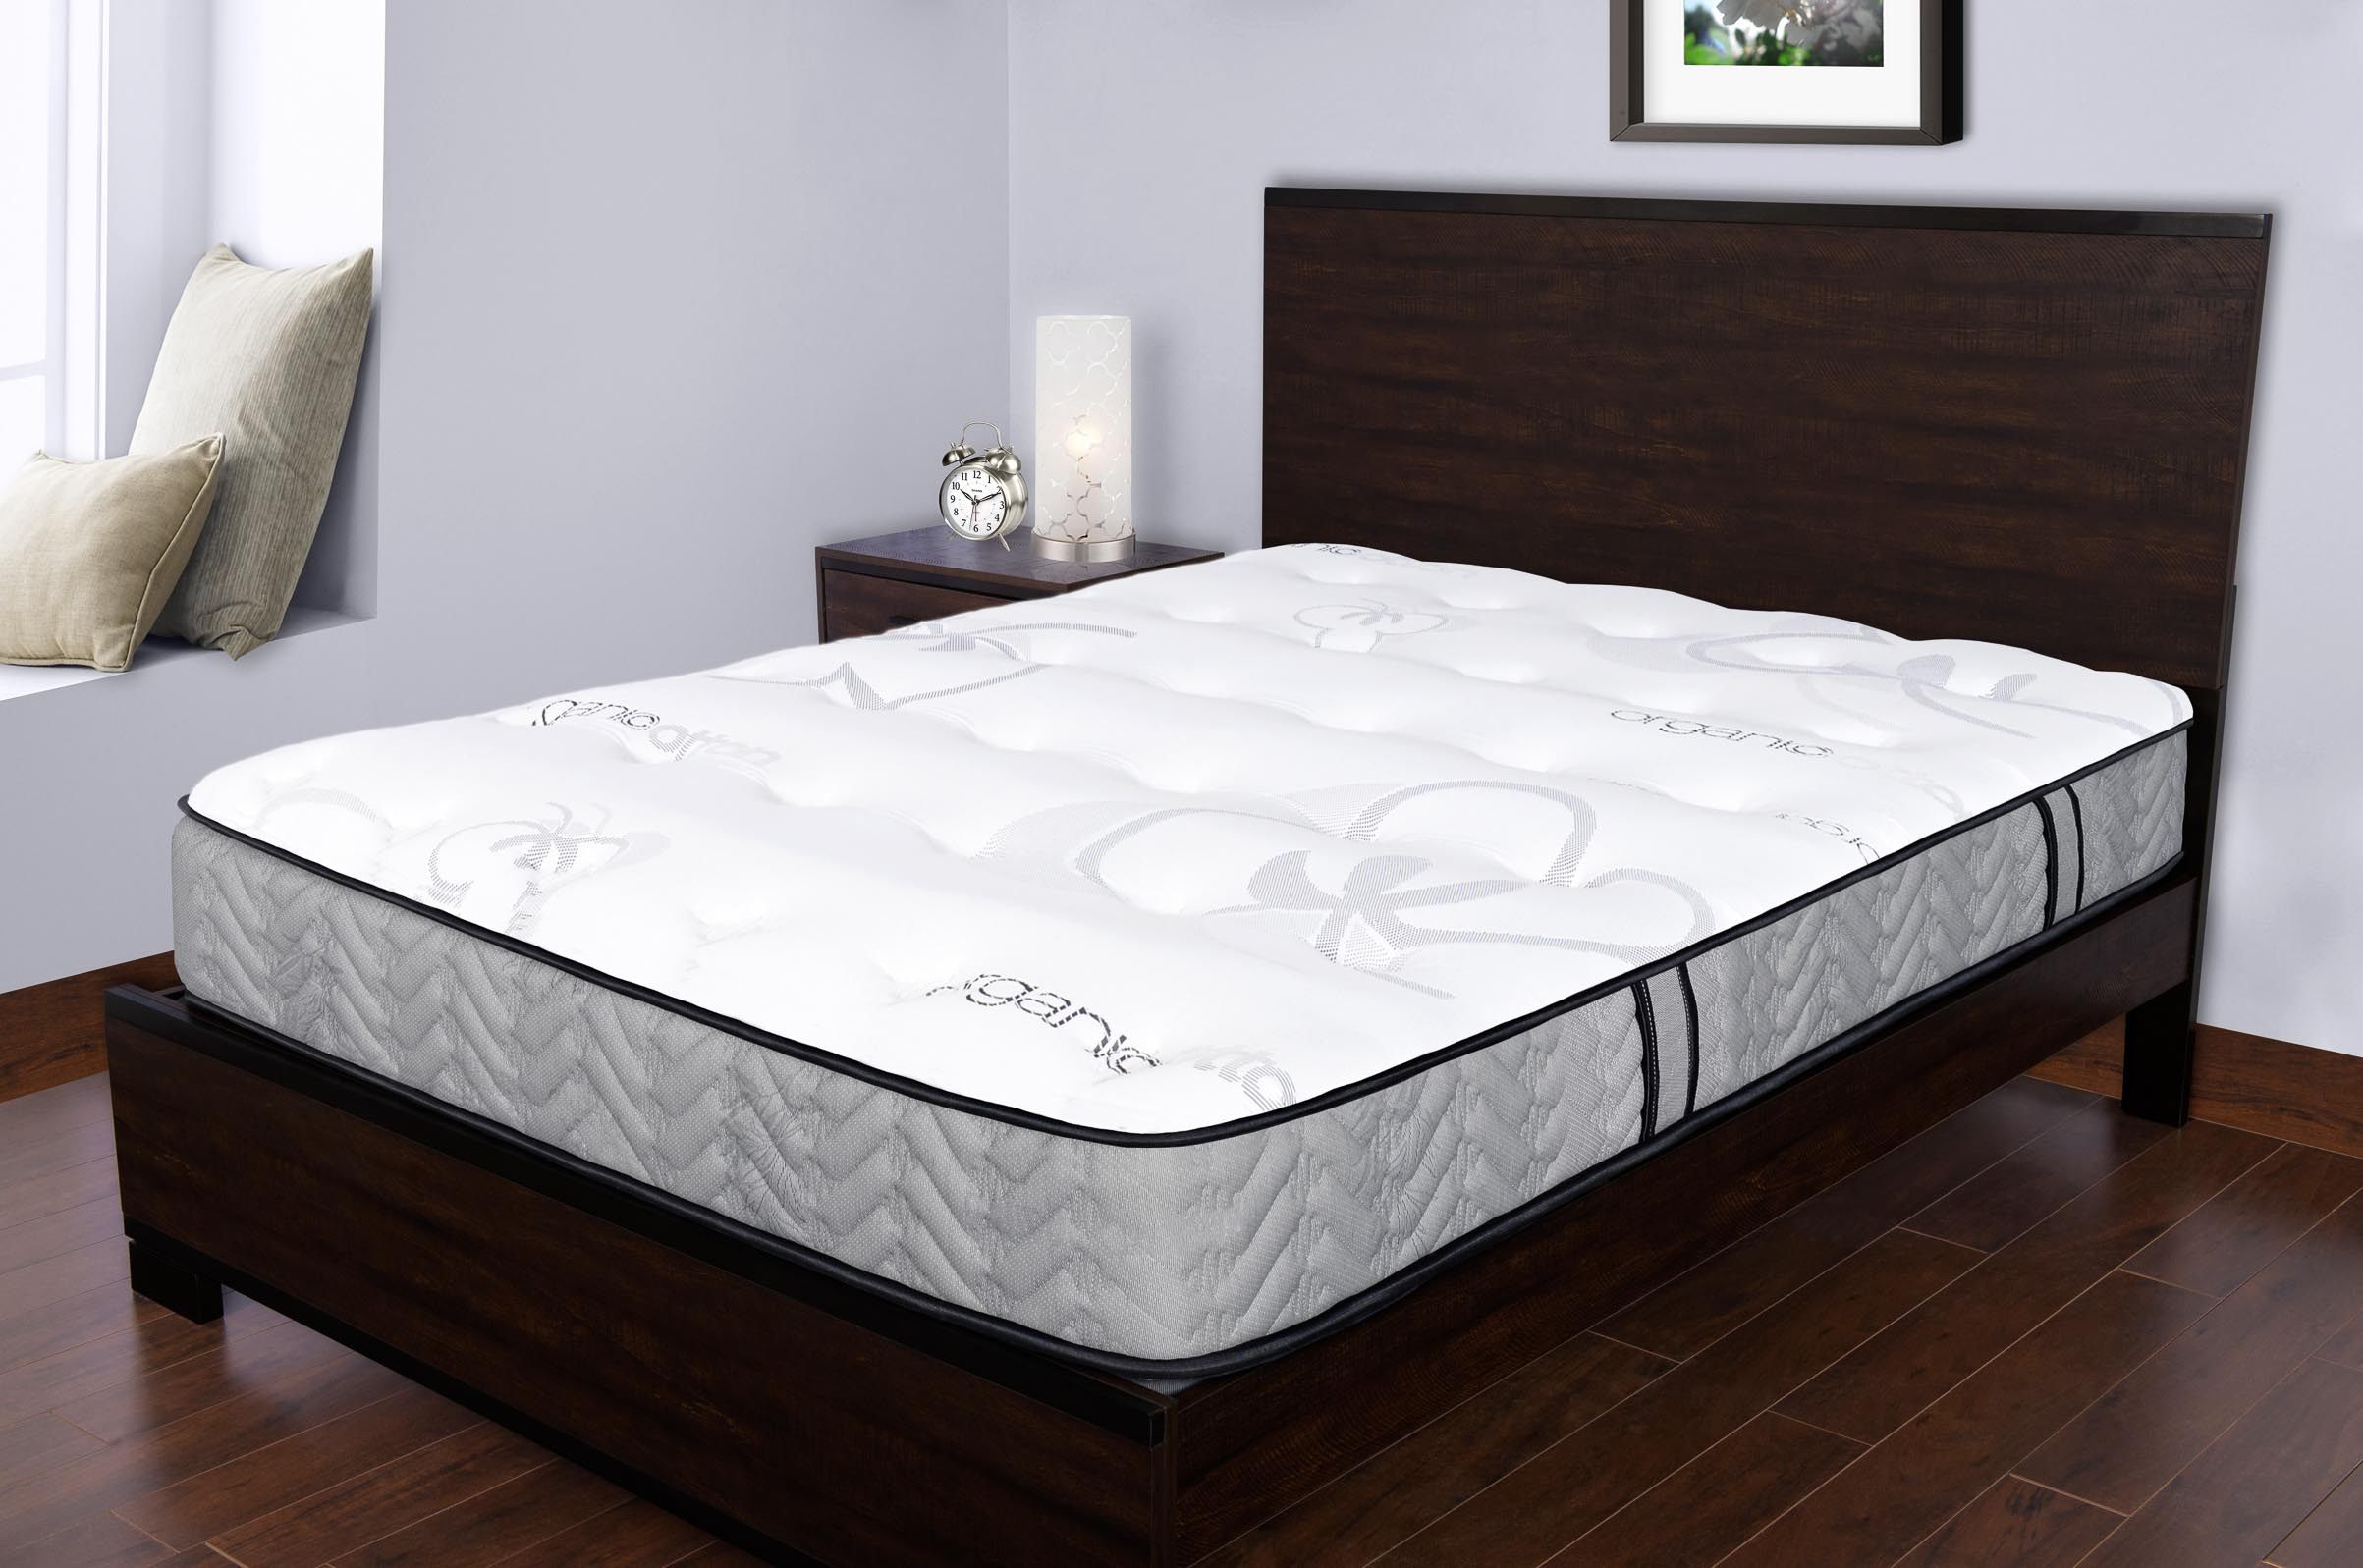 product the adults ideal futon core split build dormio support duke of heavy to organic with bottom a and thick mattress slim for is firm children